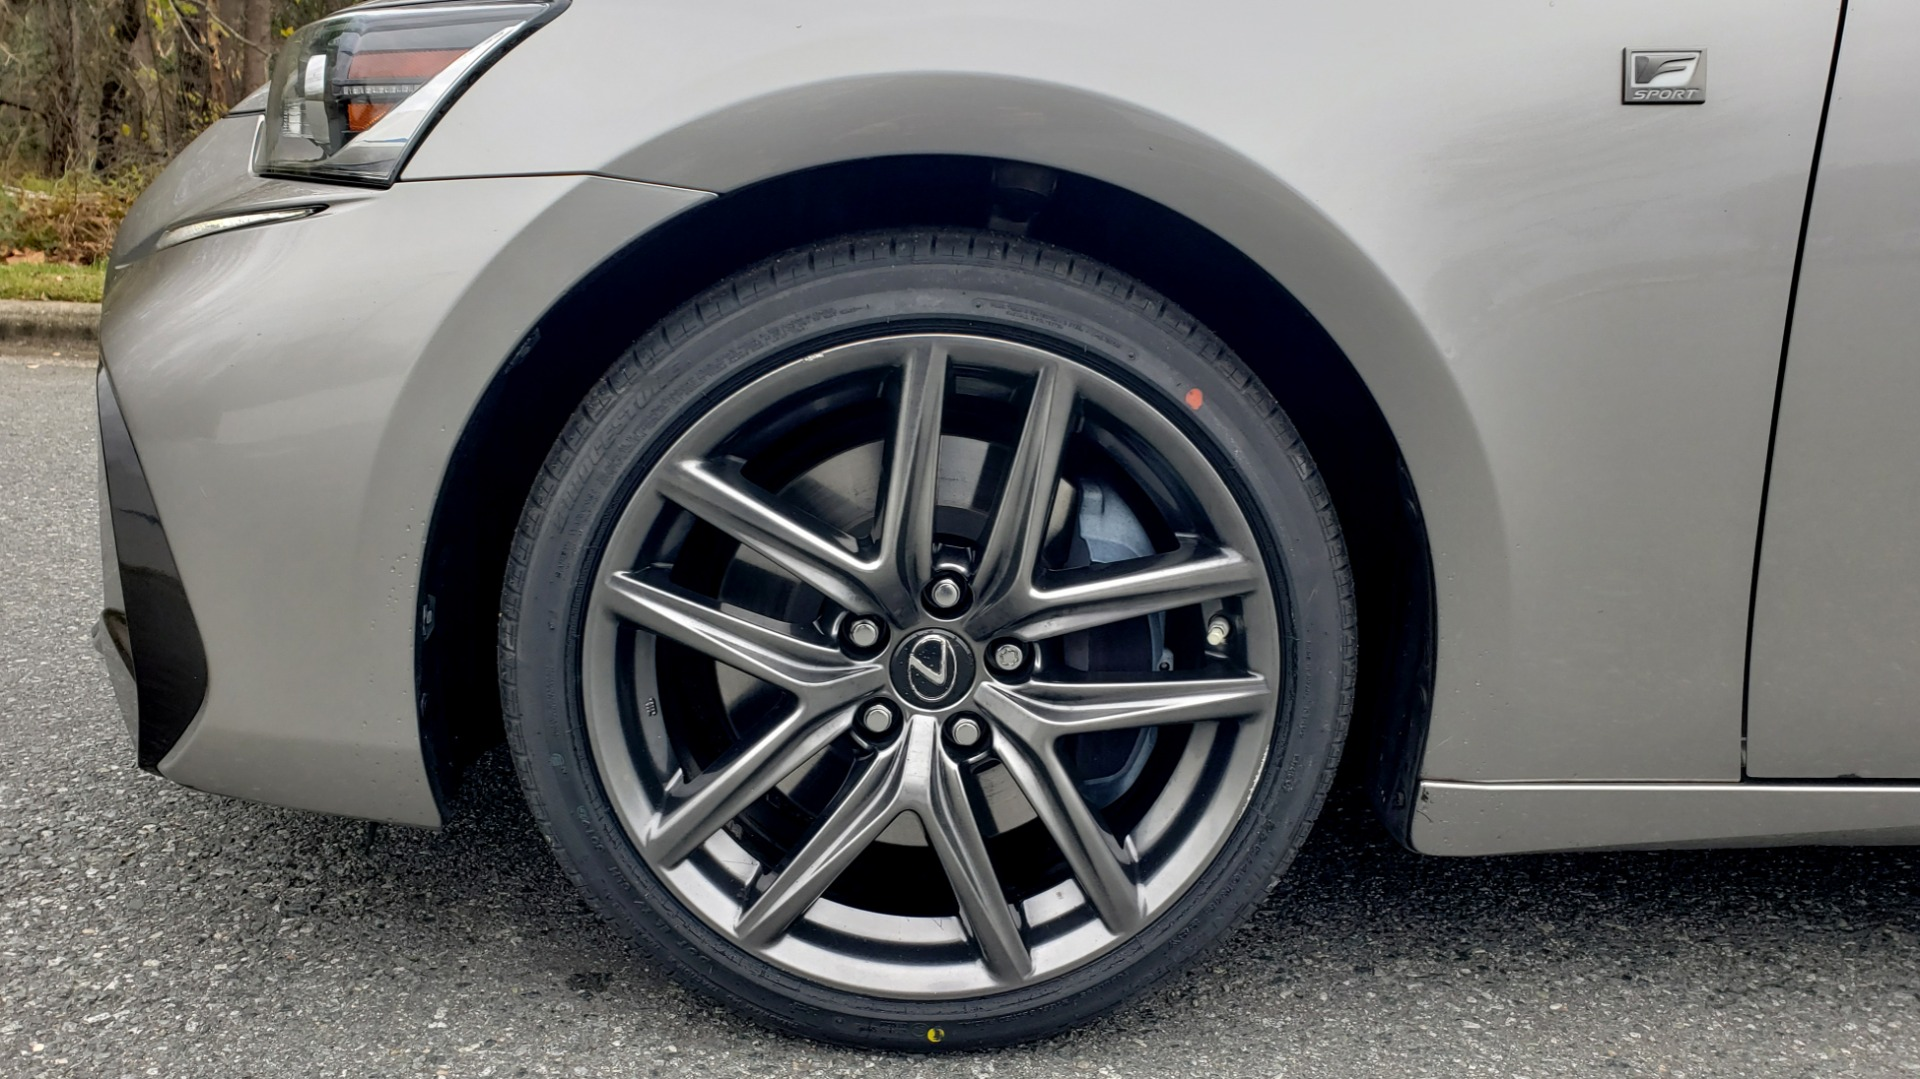 Used 2017 Lexus IS 200 TURBO F-SPORT / BSM / SUNROOF / VENT SEATS / REARVIEW for sale Sold at Formula Imports in Charlotte NC 28227 6